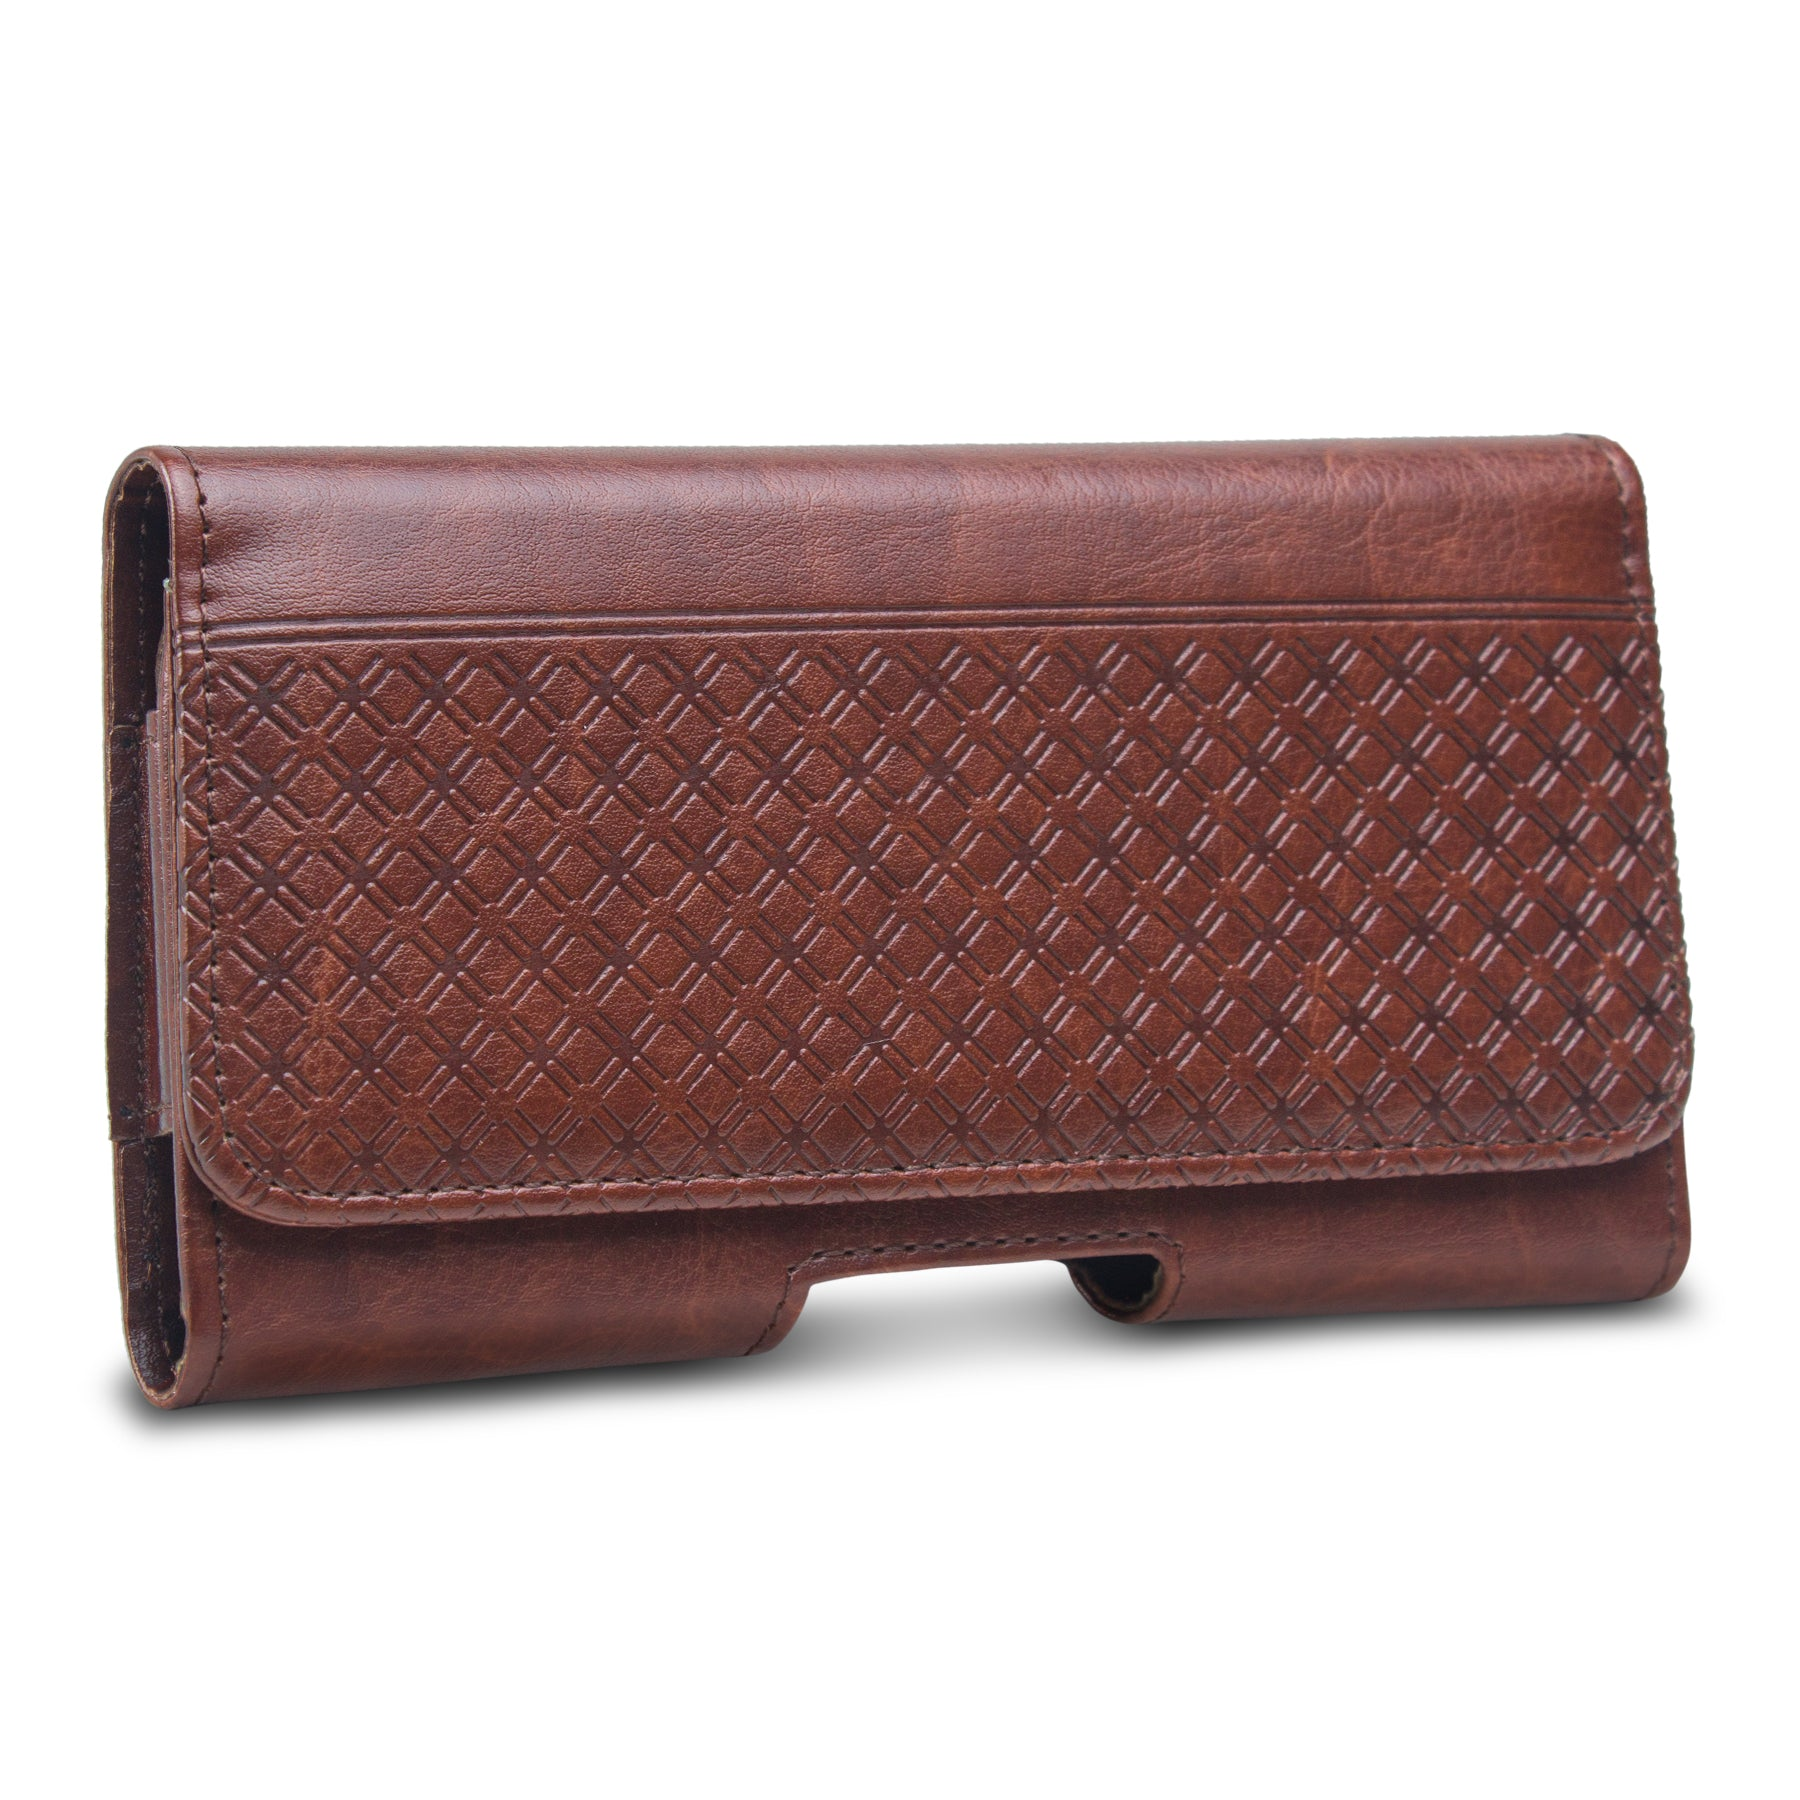 Phone Sleeve Pouch with Magnetic Lock for 4 Inch to 5 Inch Phones (Walnut Brown)